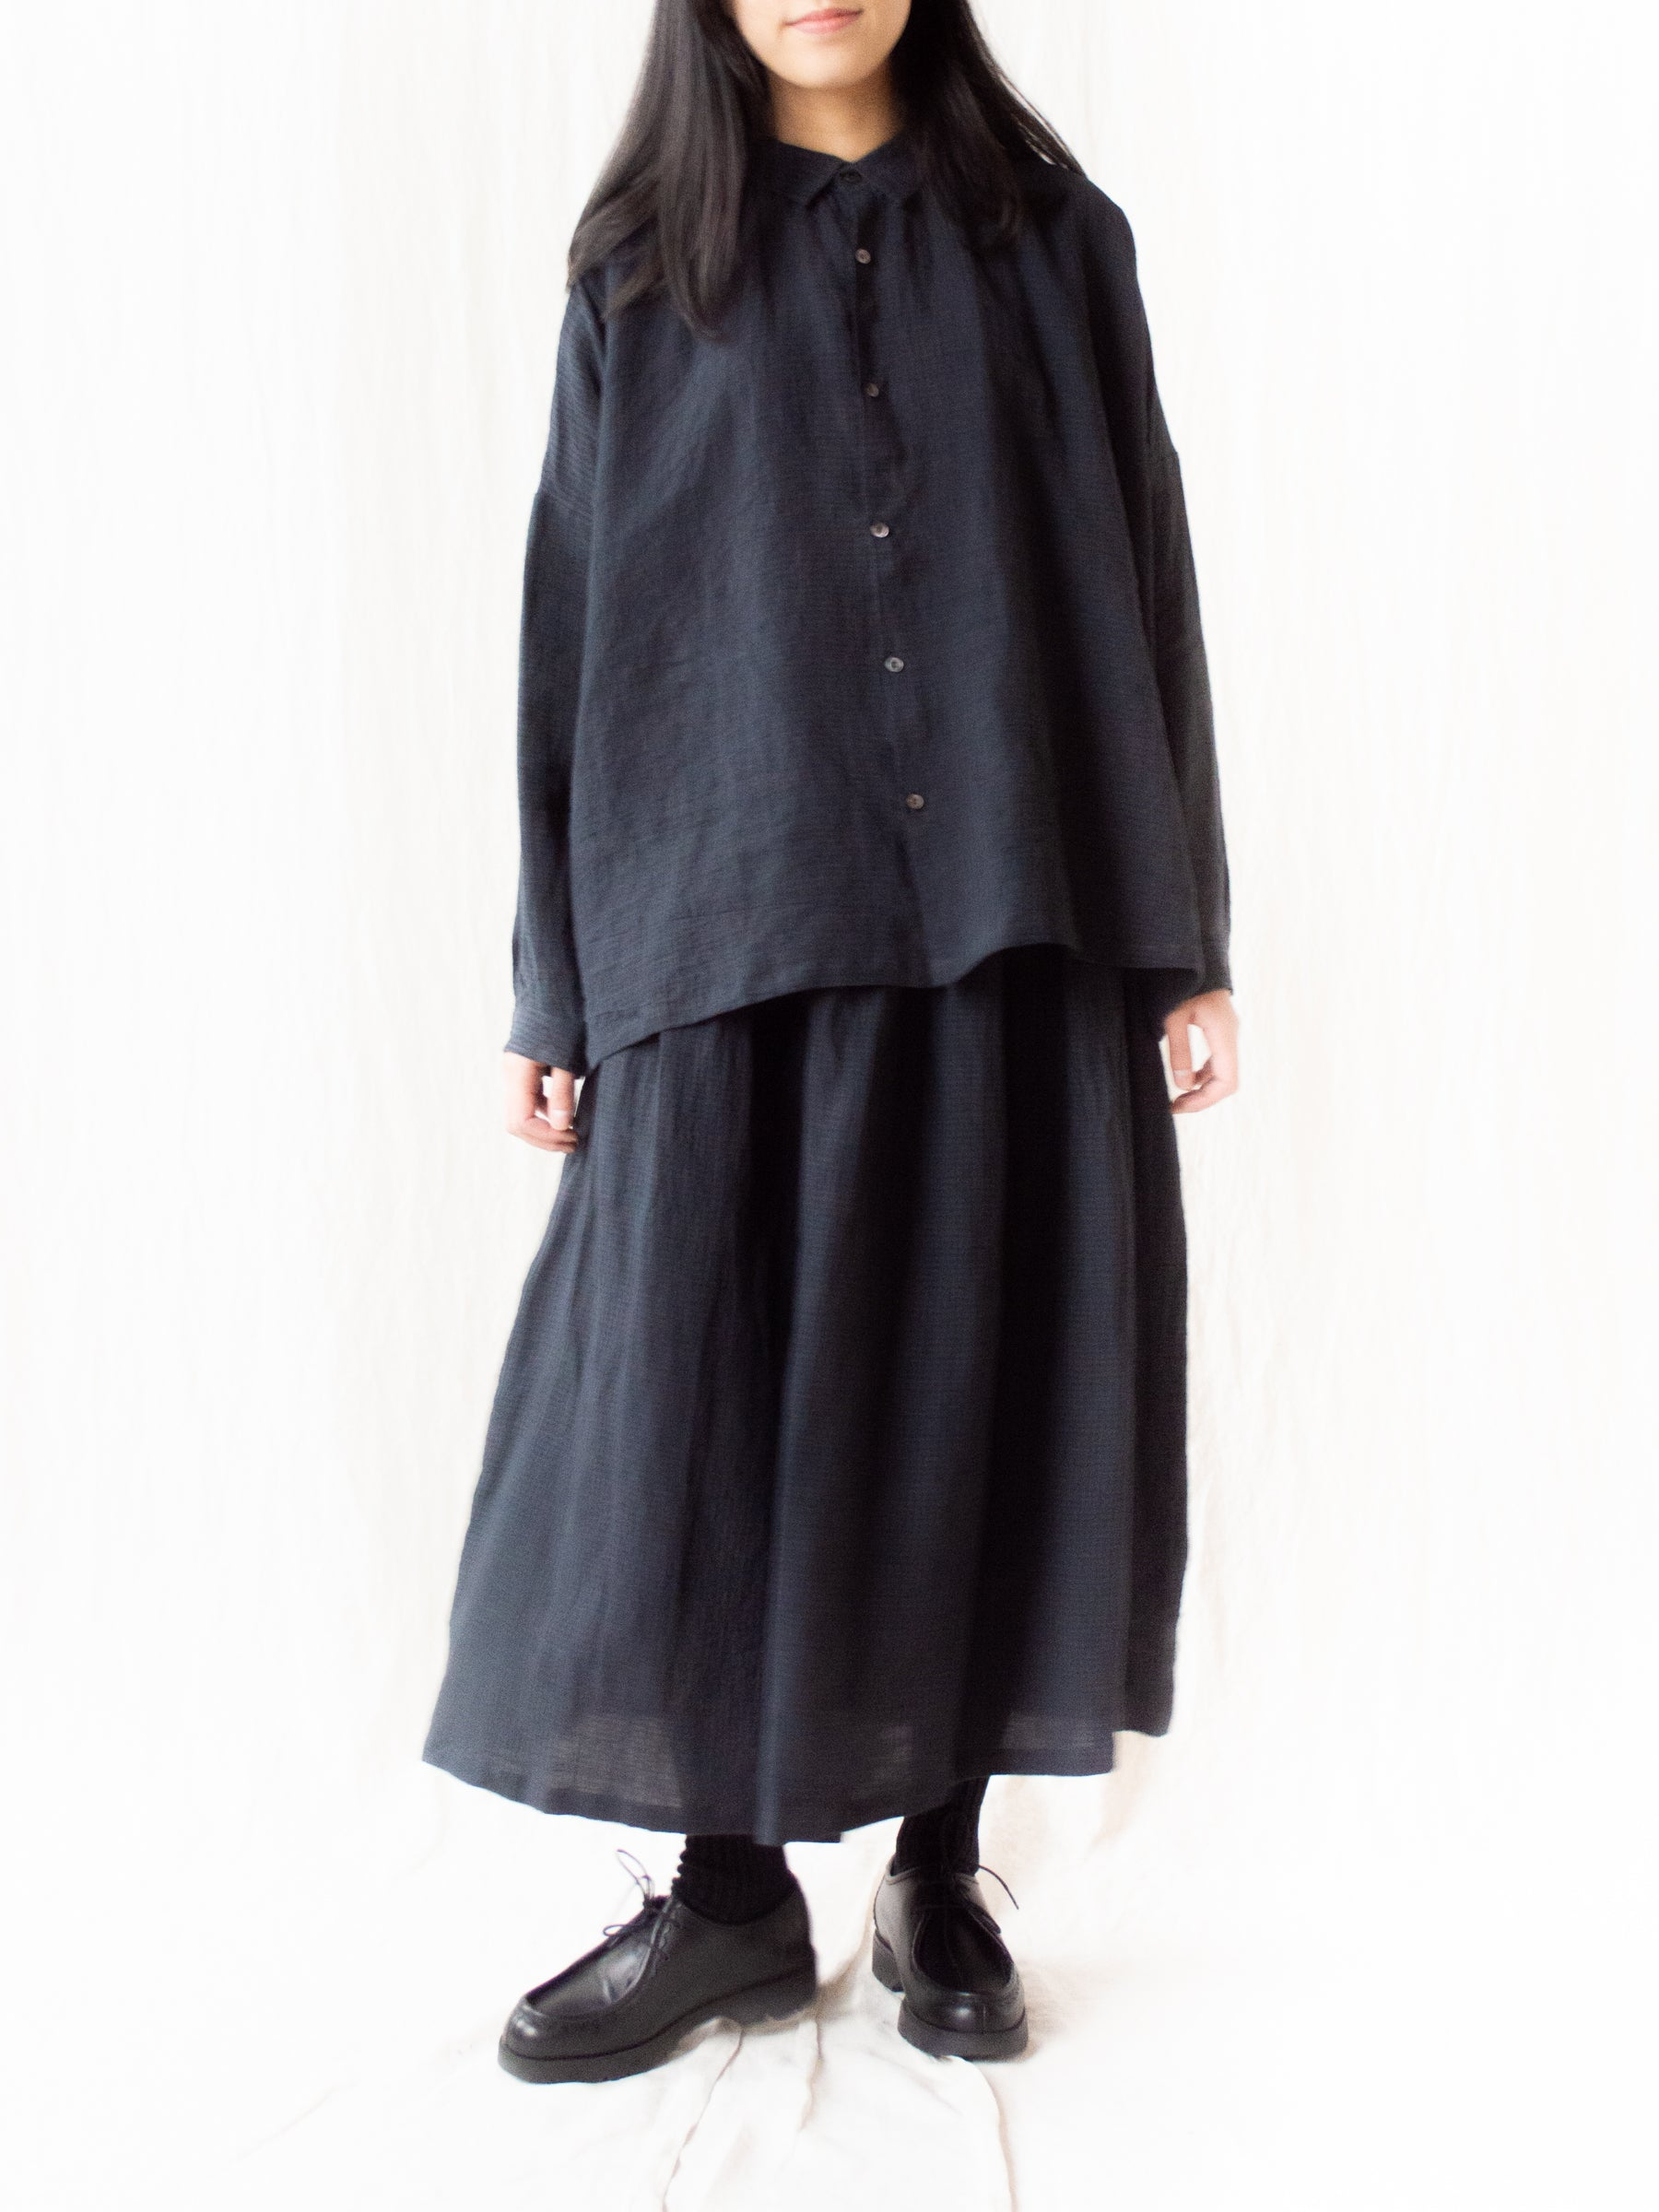 Linen AZUMADAKI Gingham Skirt - Black